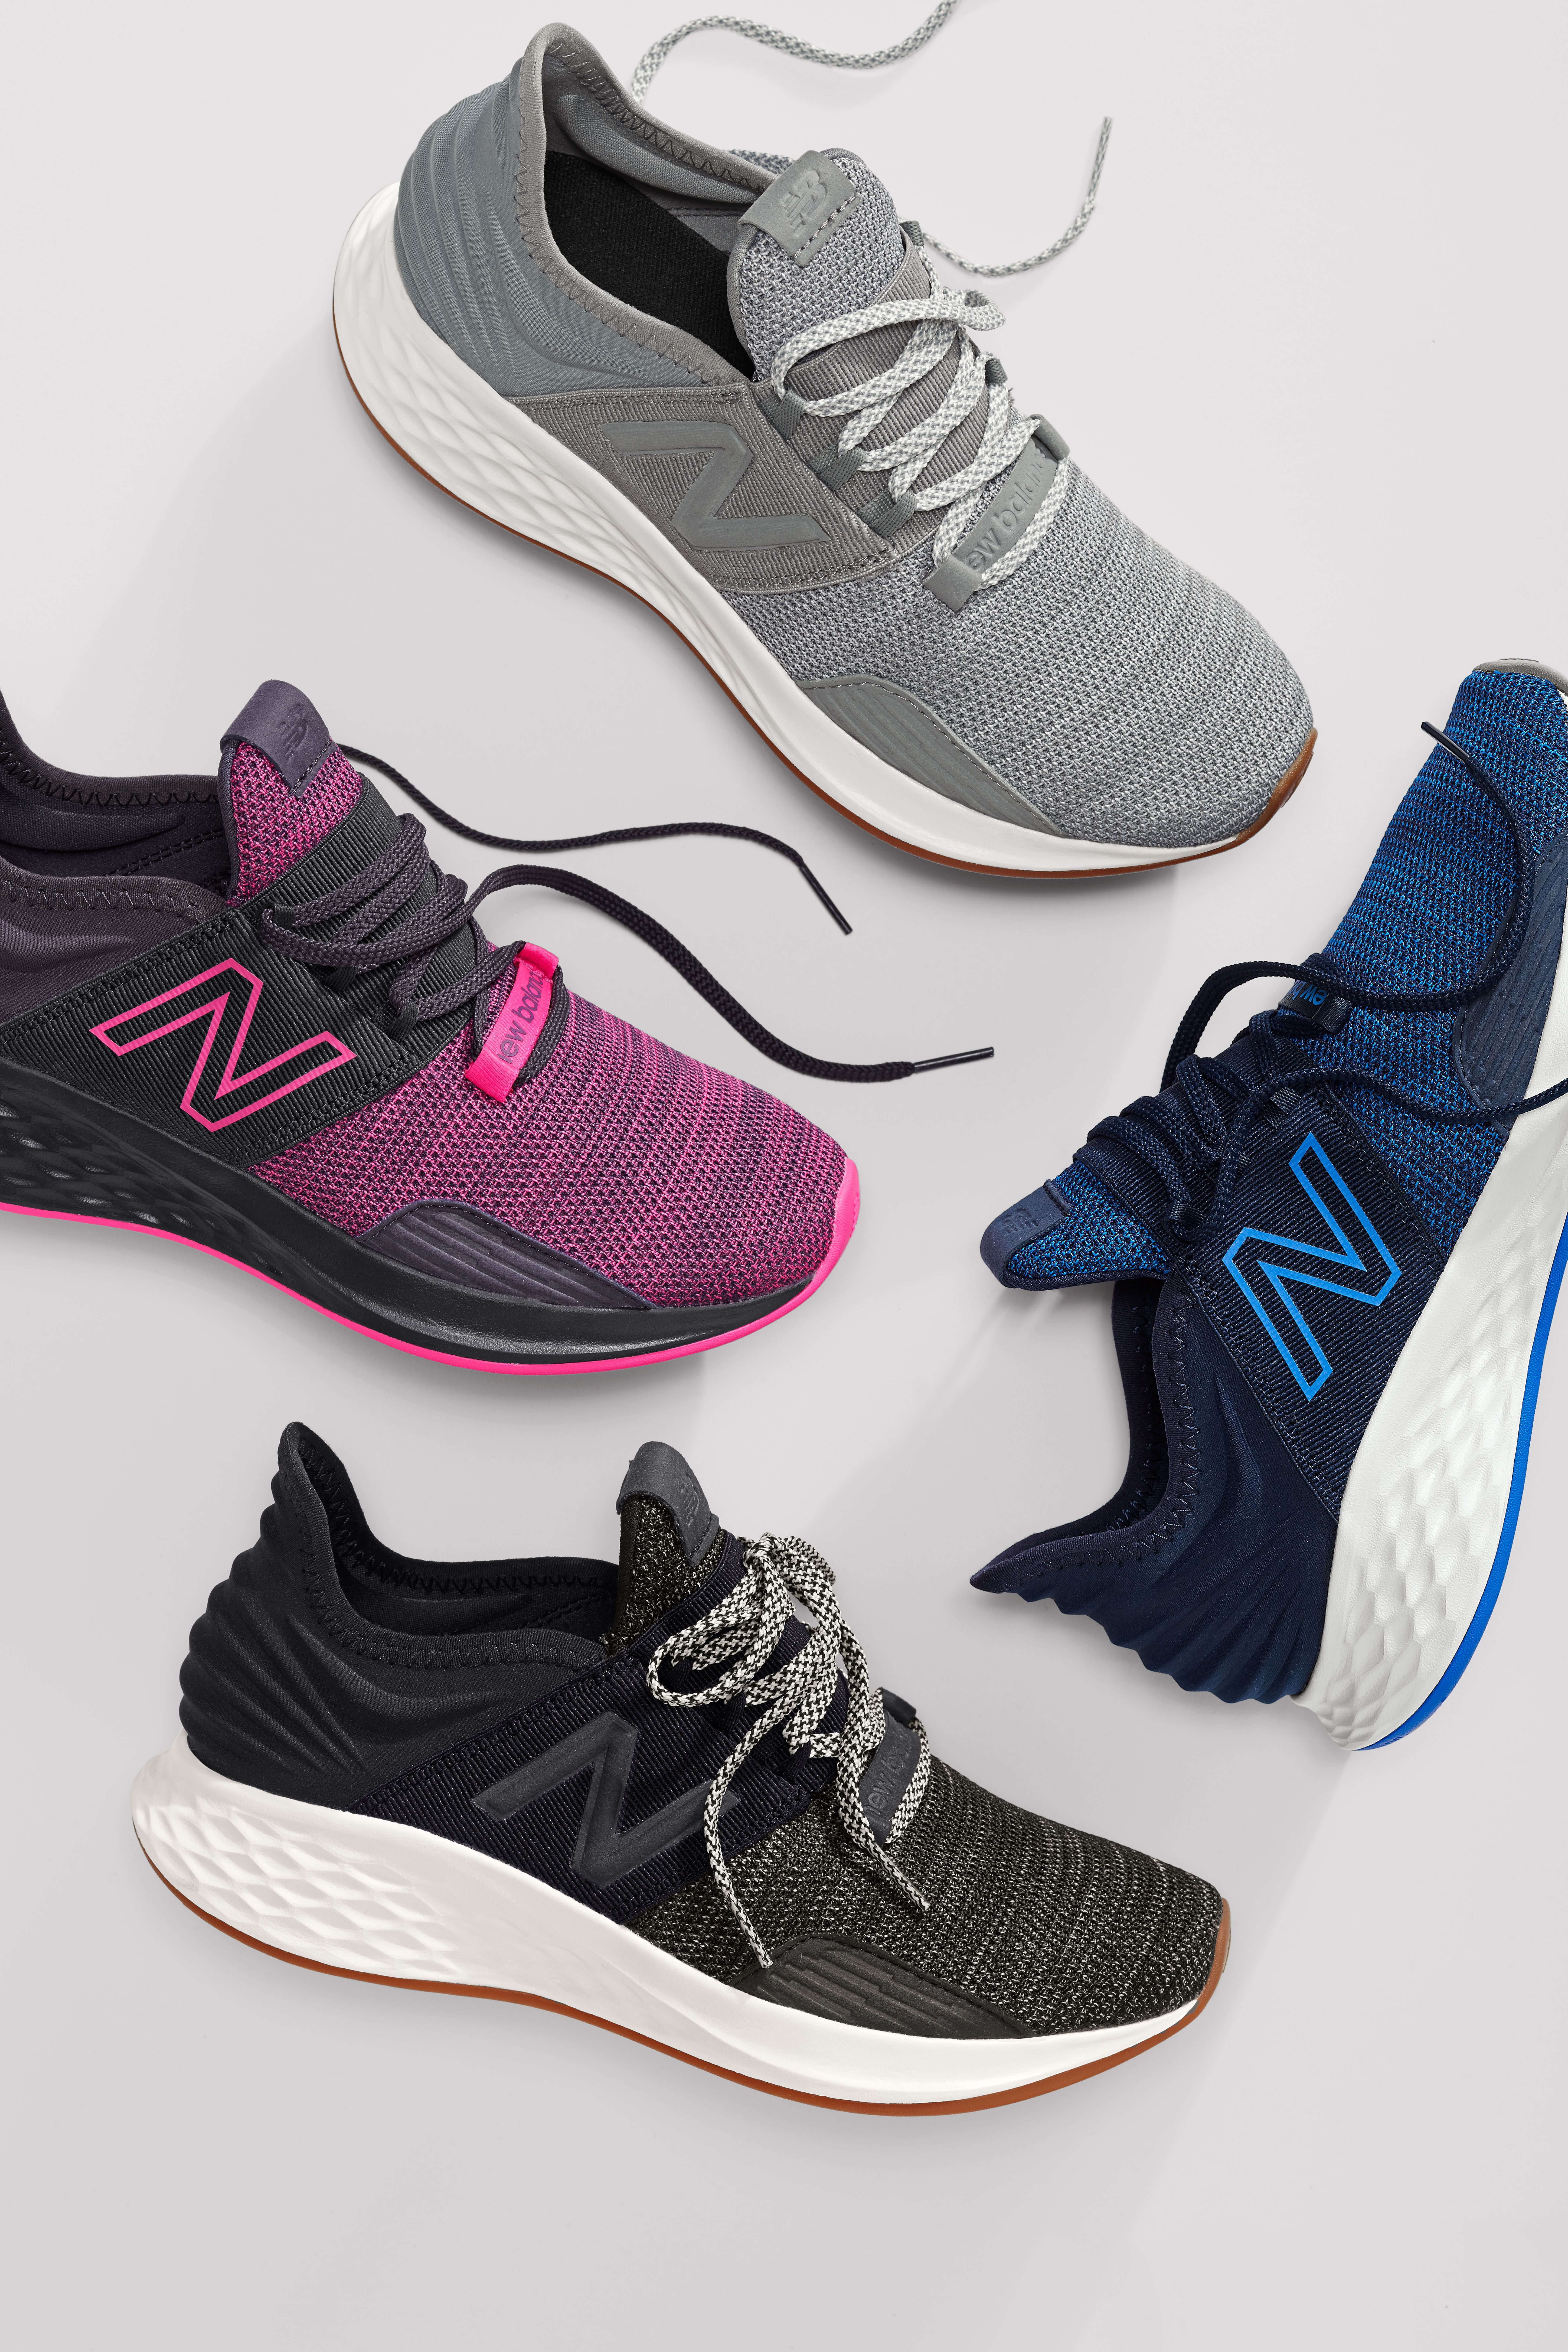 Enjoy all day comfort in premium style with the Fresh Foam